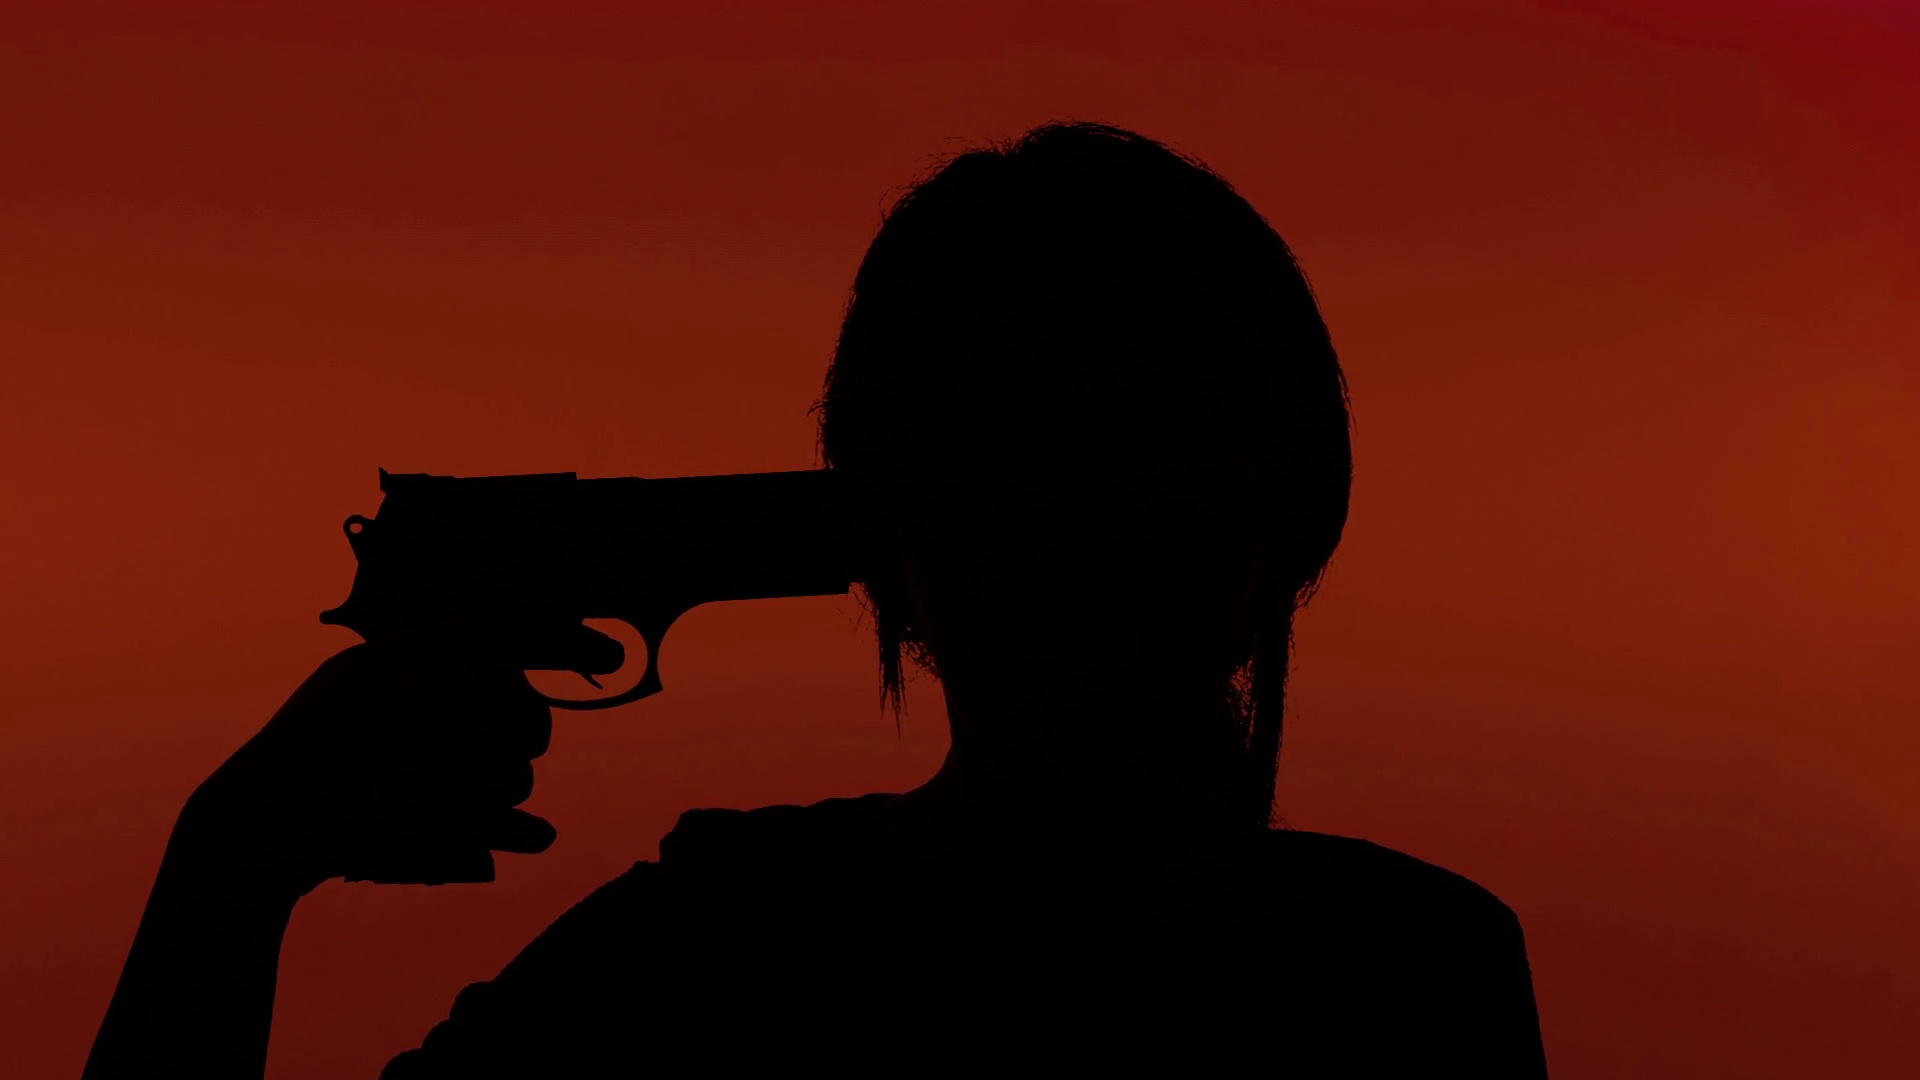 1920x1080 Silhouette Man Gun Attempting Suicide Red. A Depressed Man Taking